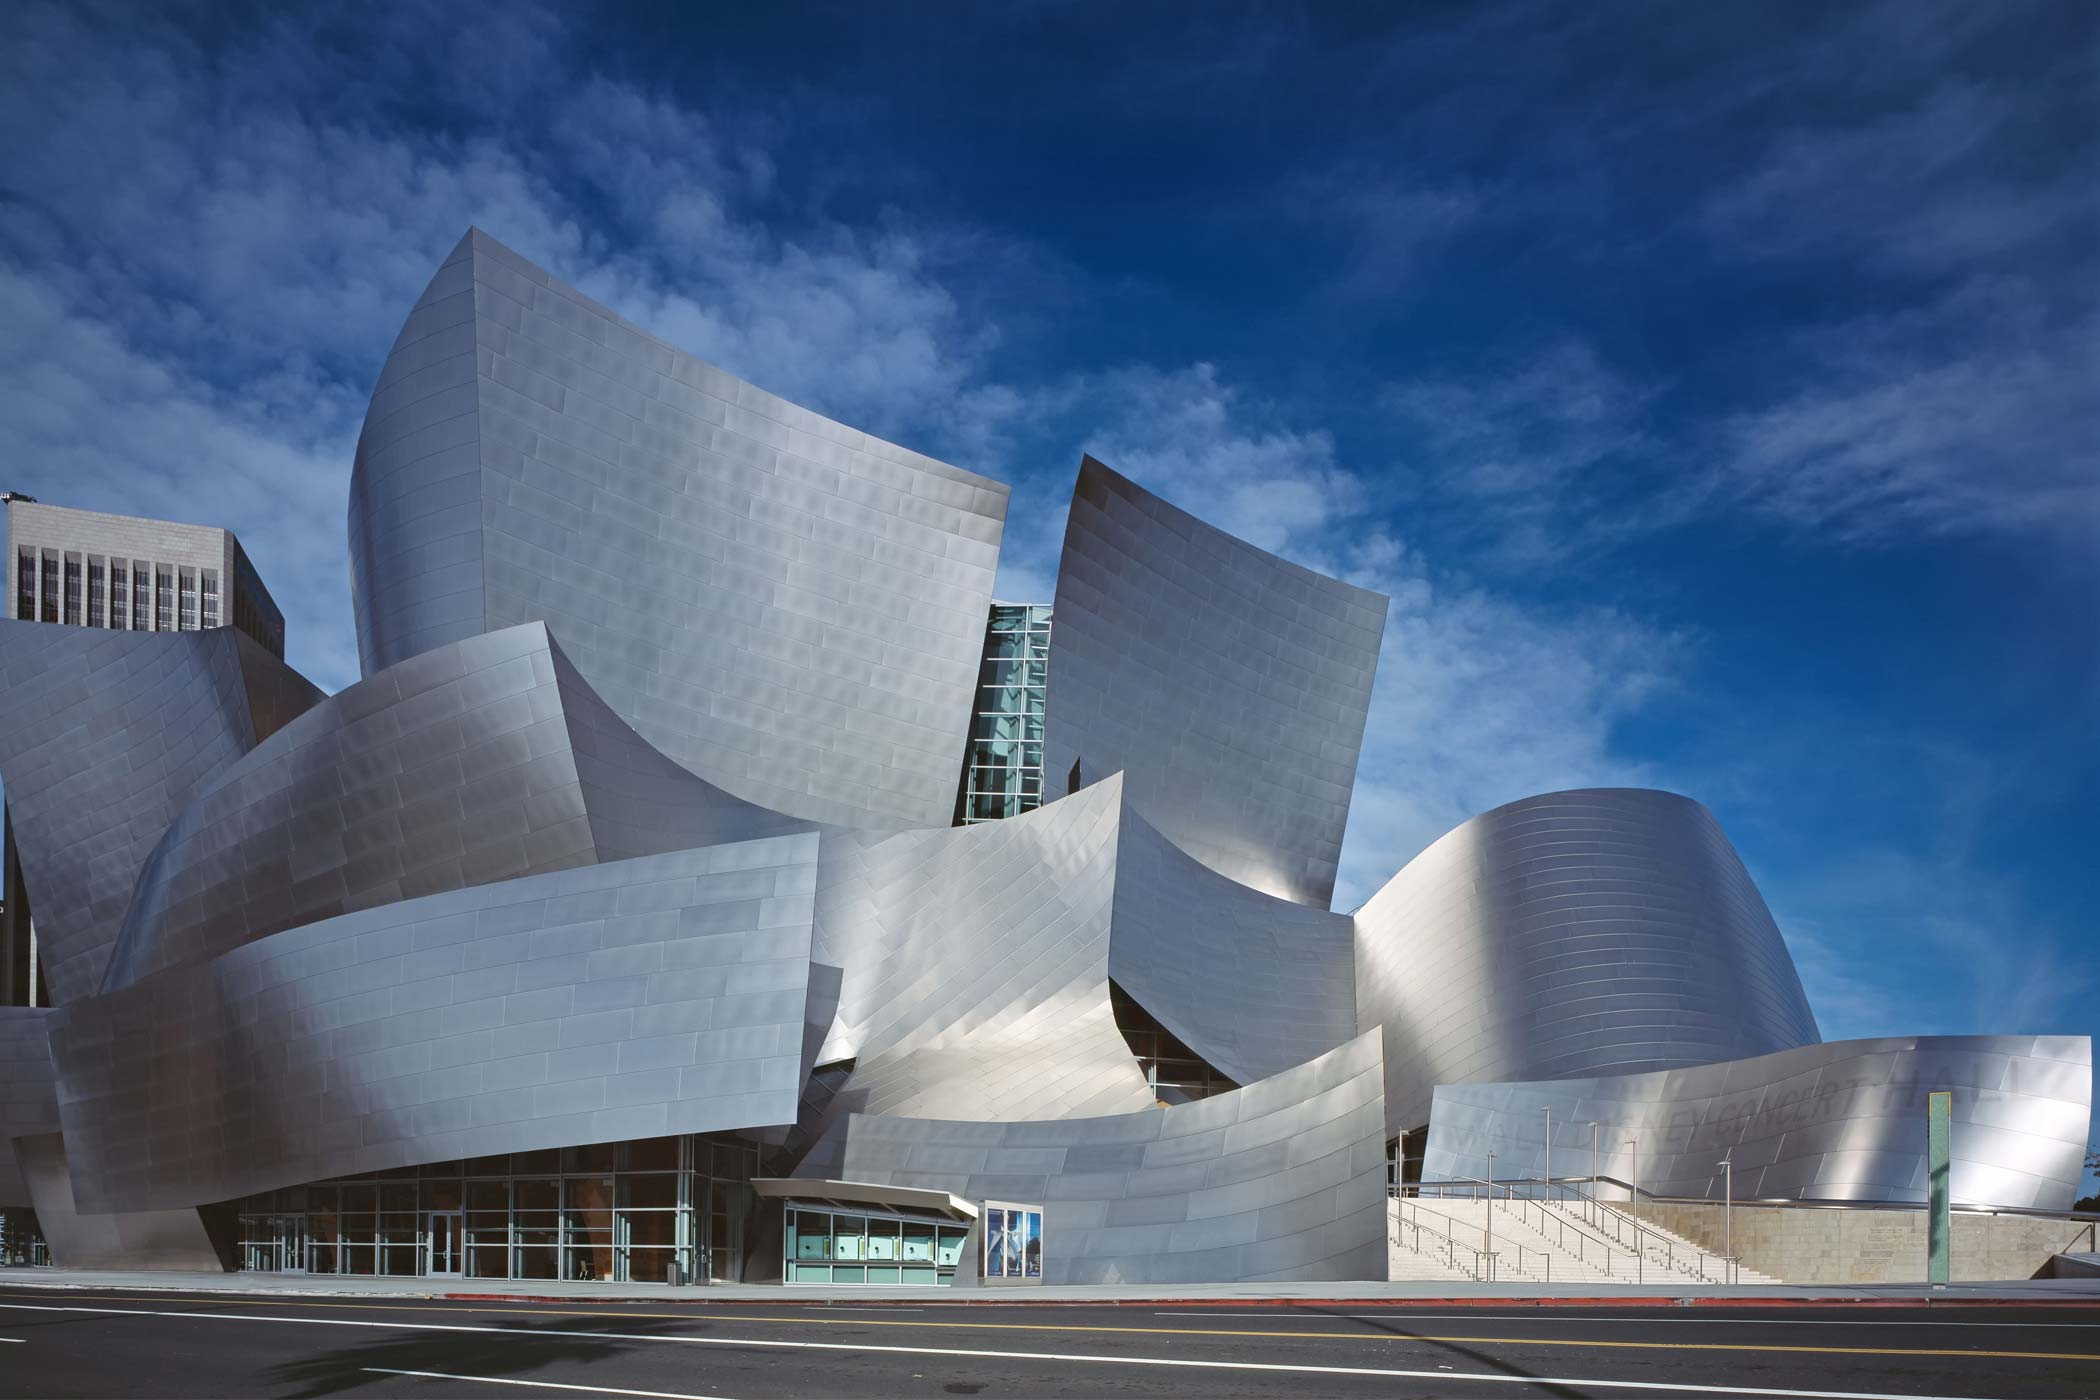 Walt Disney Concert Hall exterior shot during the day